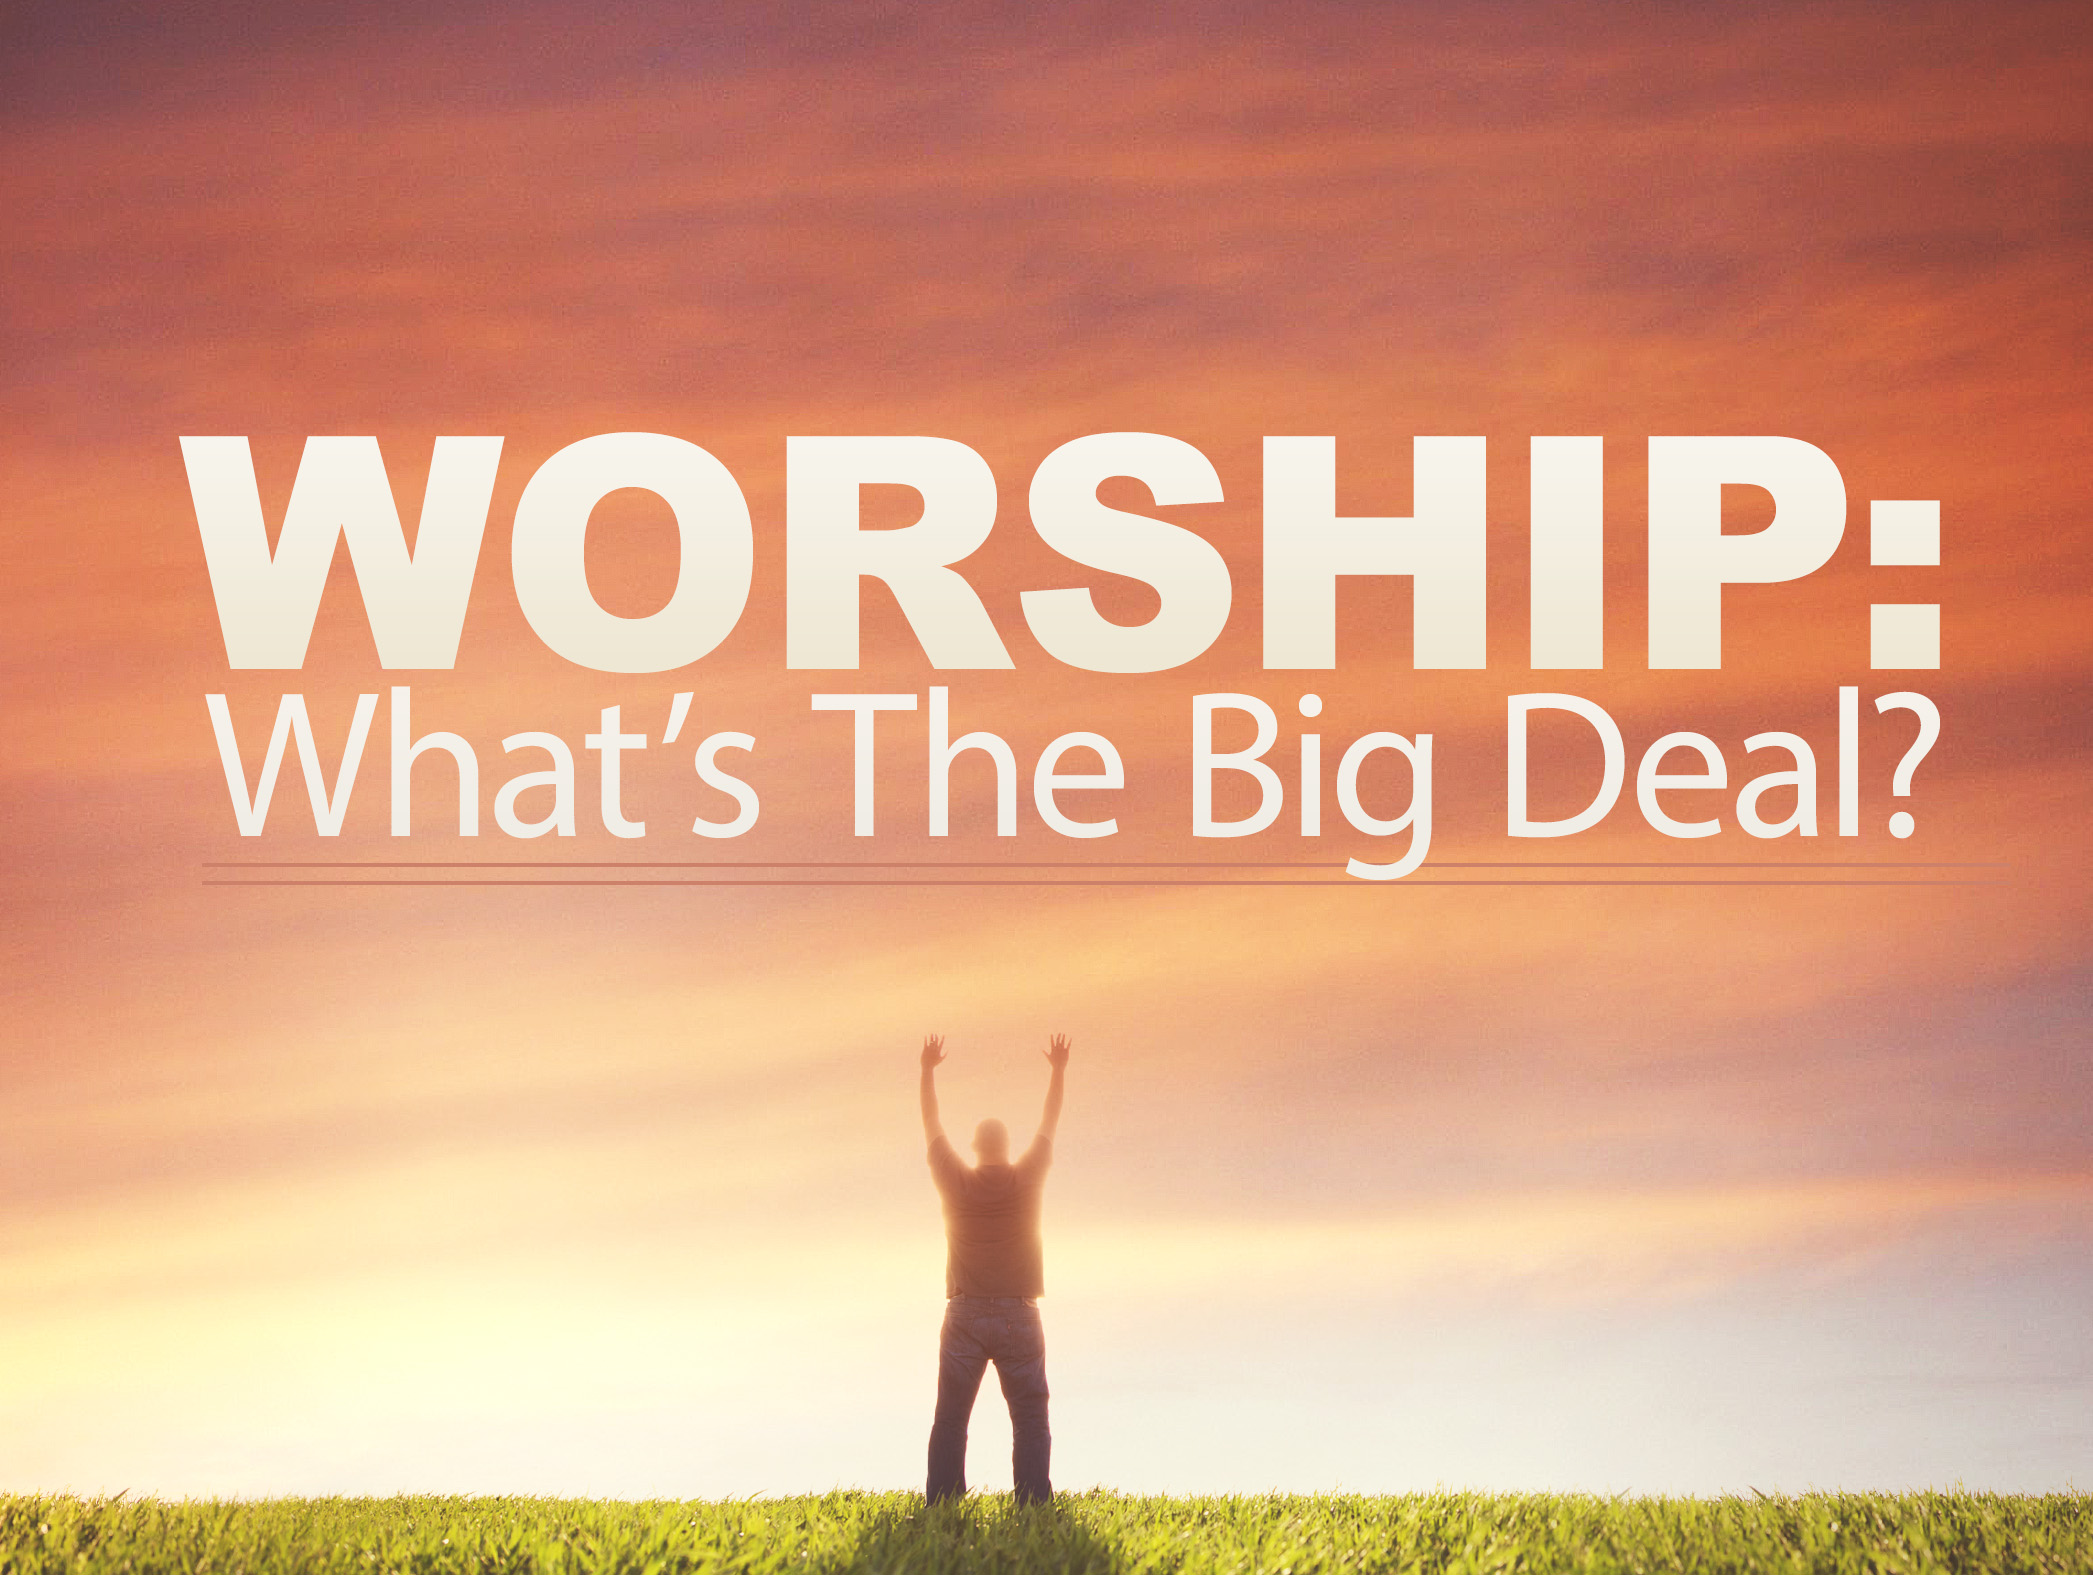 Worship: What's The Big Deal